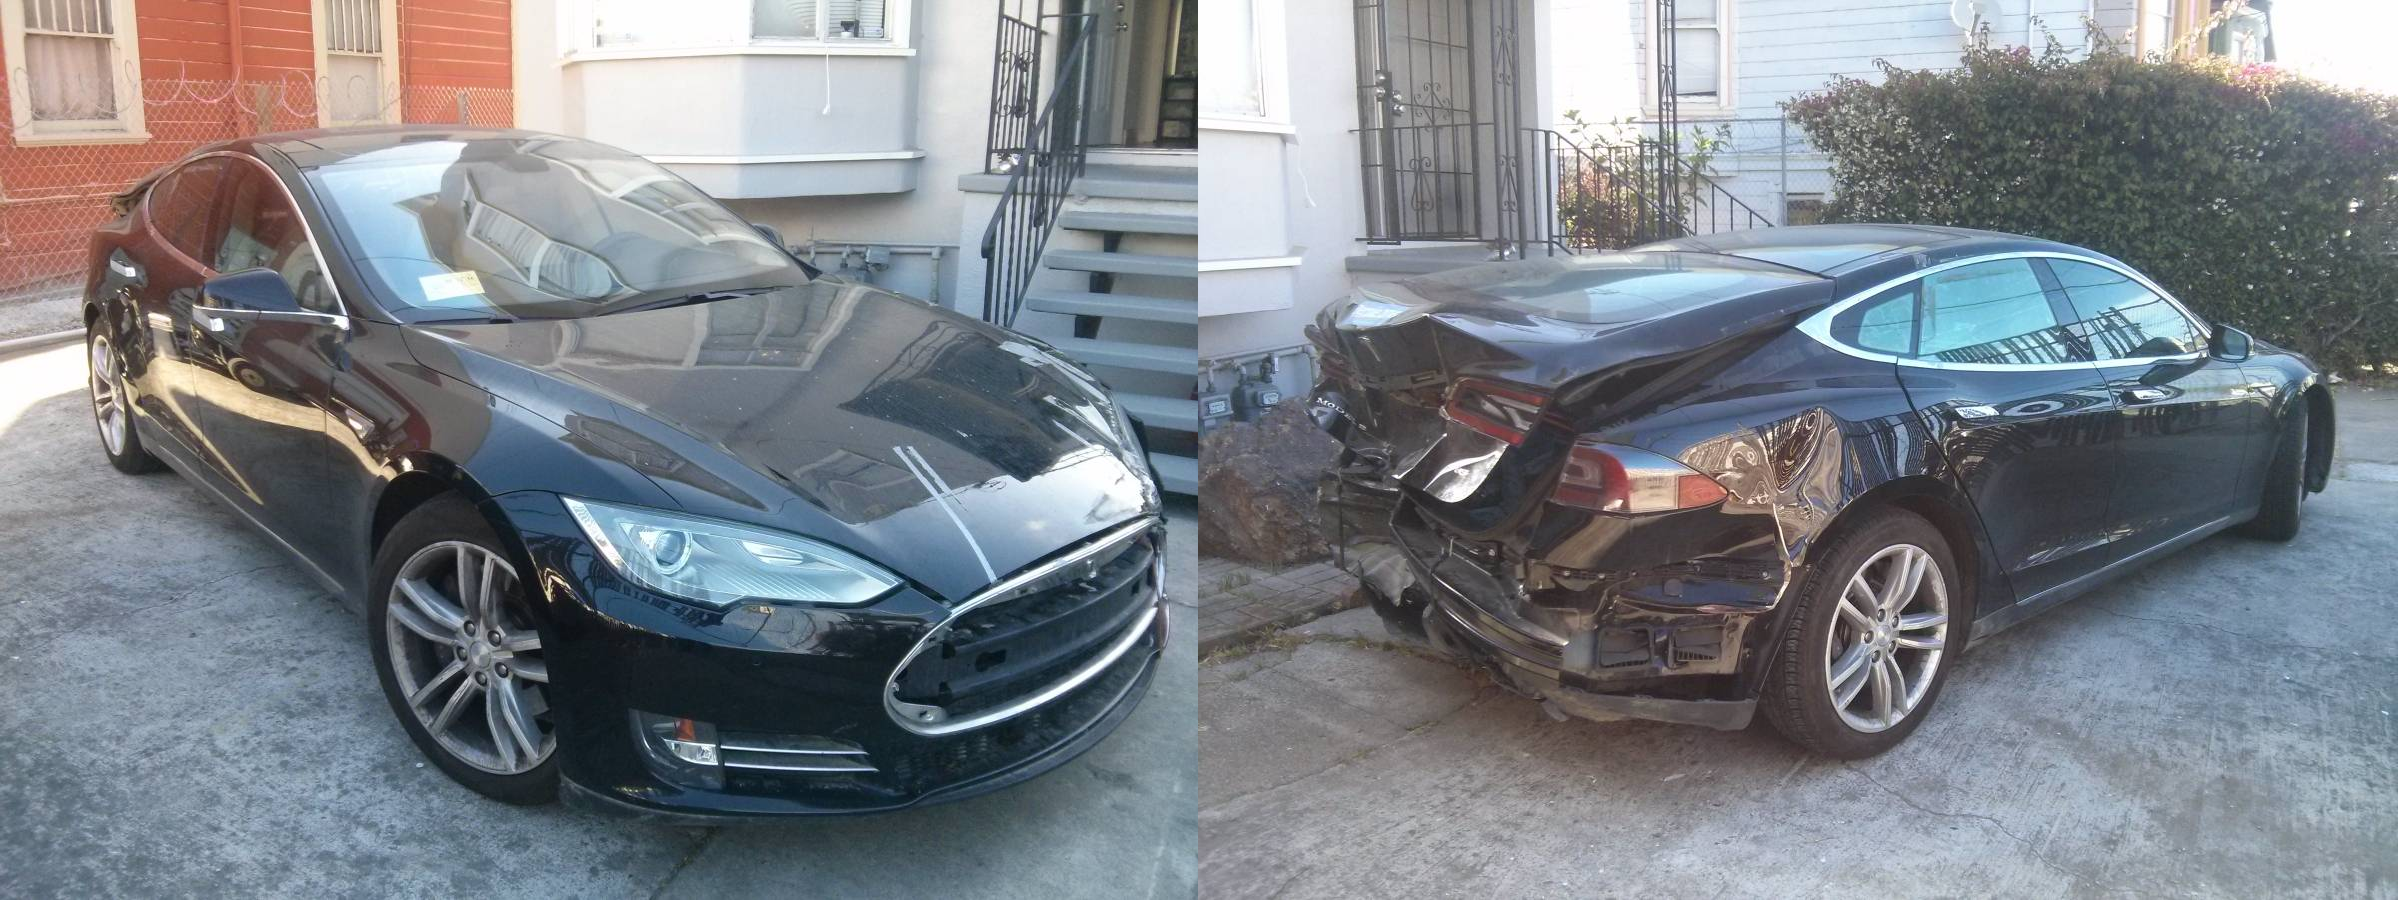 damaged Model S for sale